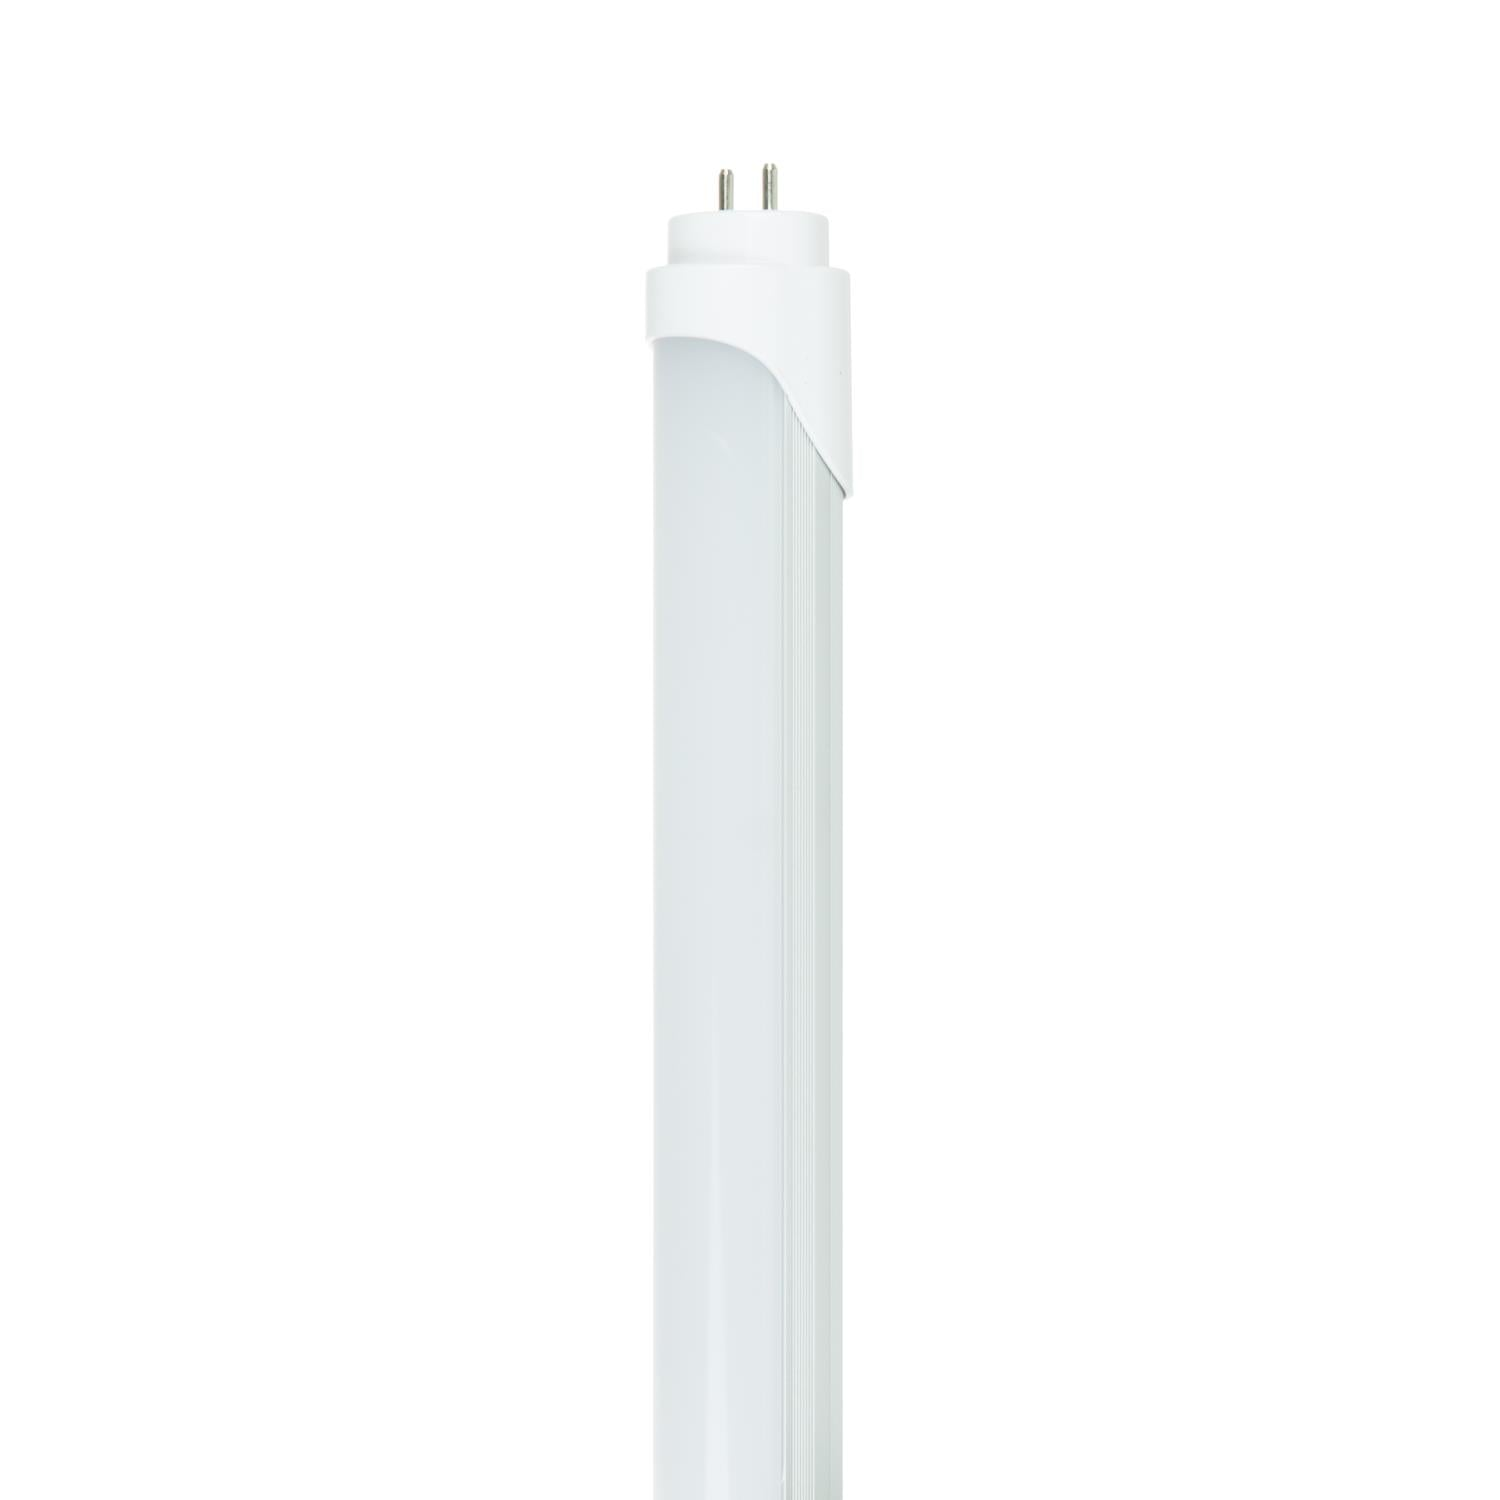 SUNLITE 88023-SU LED Bypass 22w Light Bulb Medium Bi-Pin (G13) Base Warm White